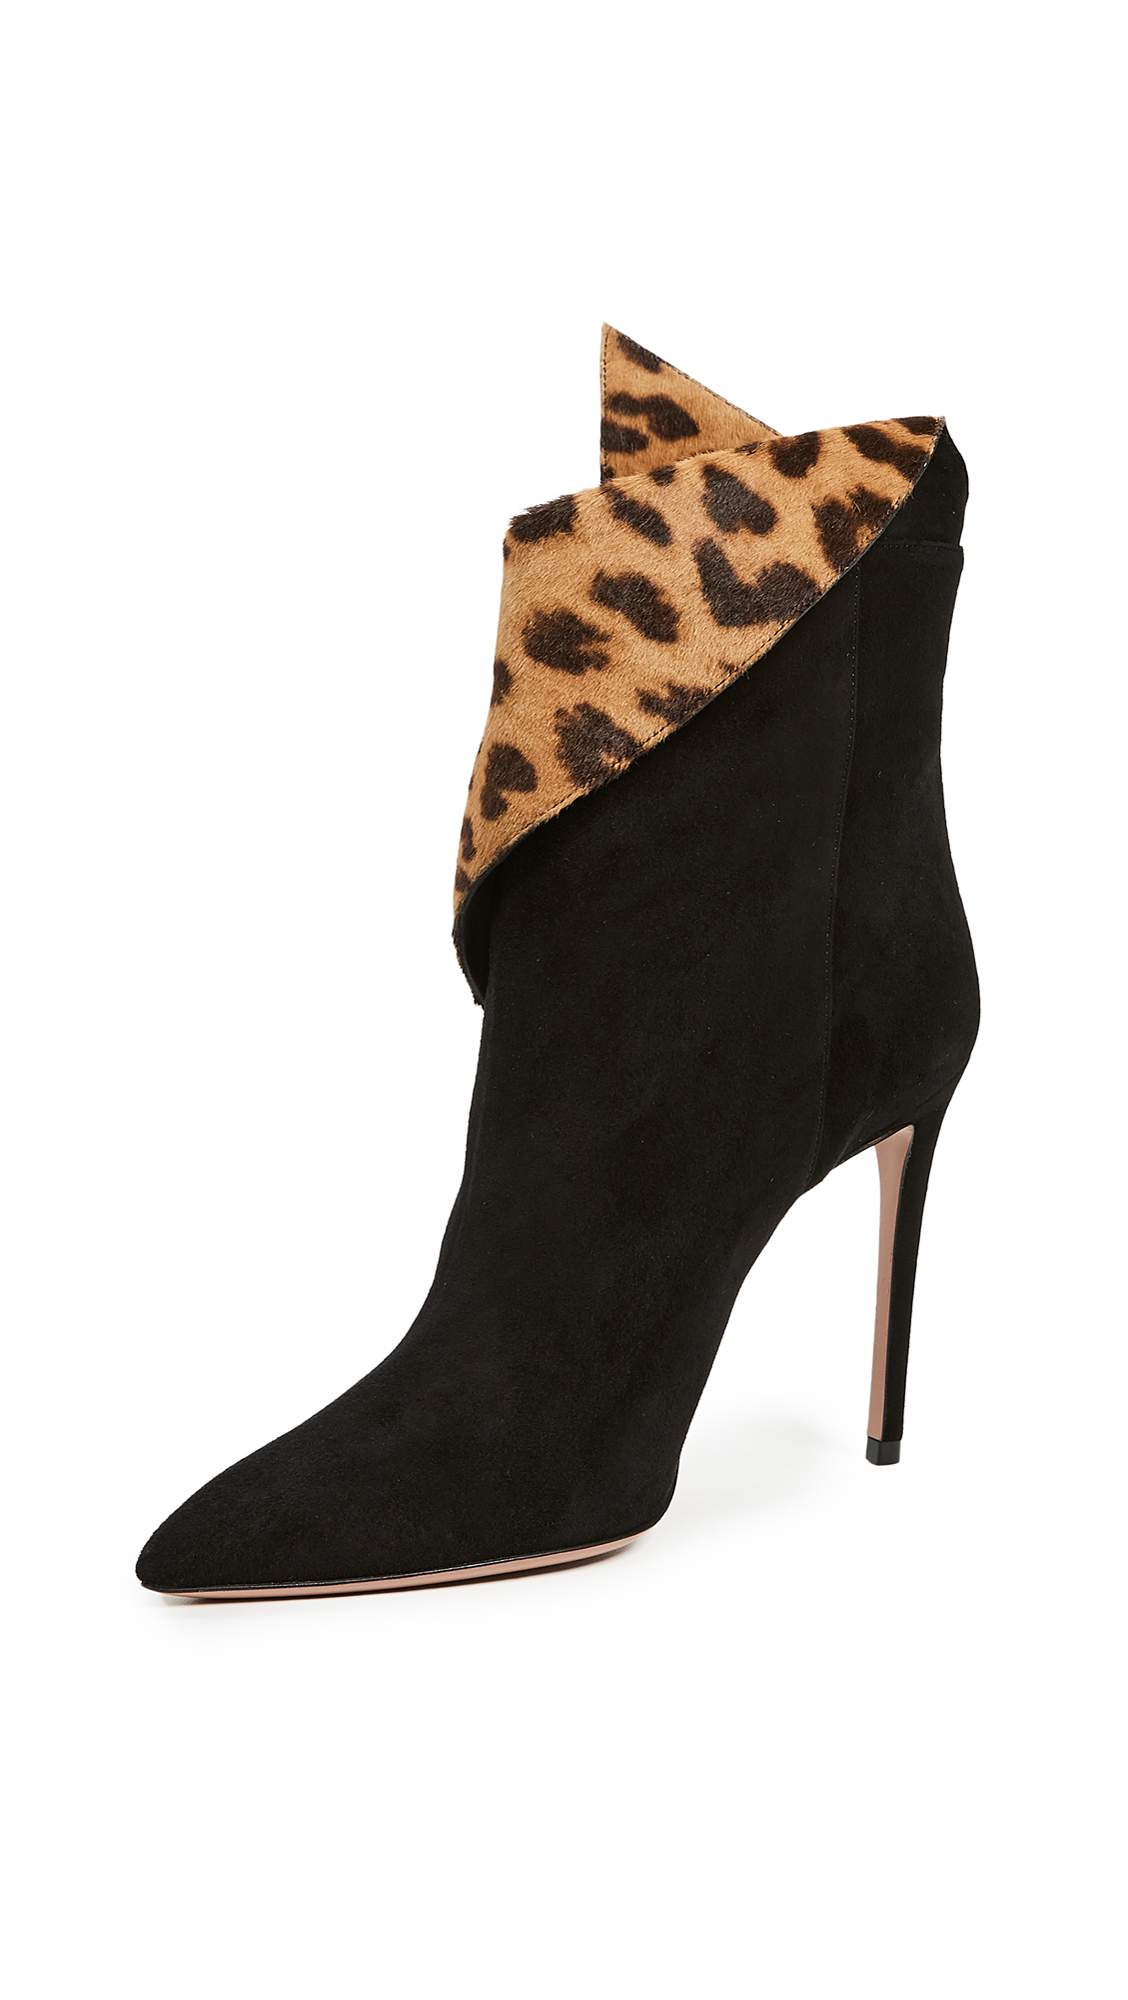 Aquazzura Night Fever 105mm Booties - Black/Caramel